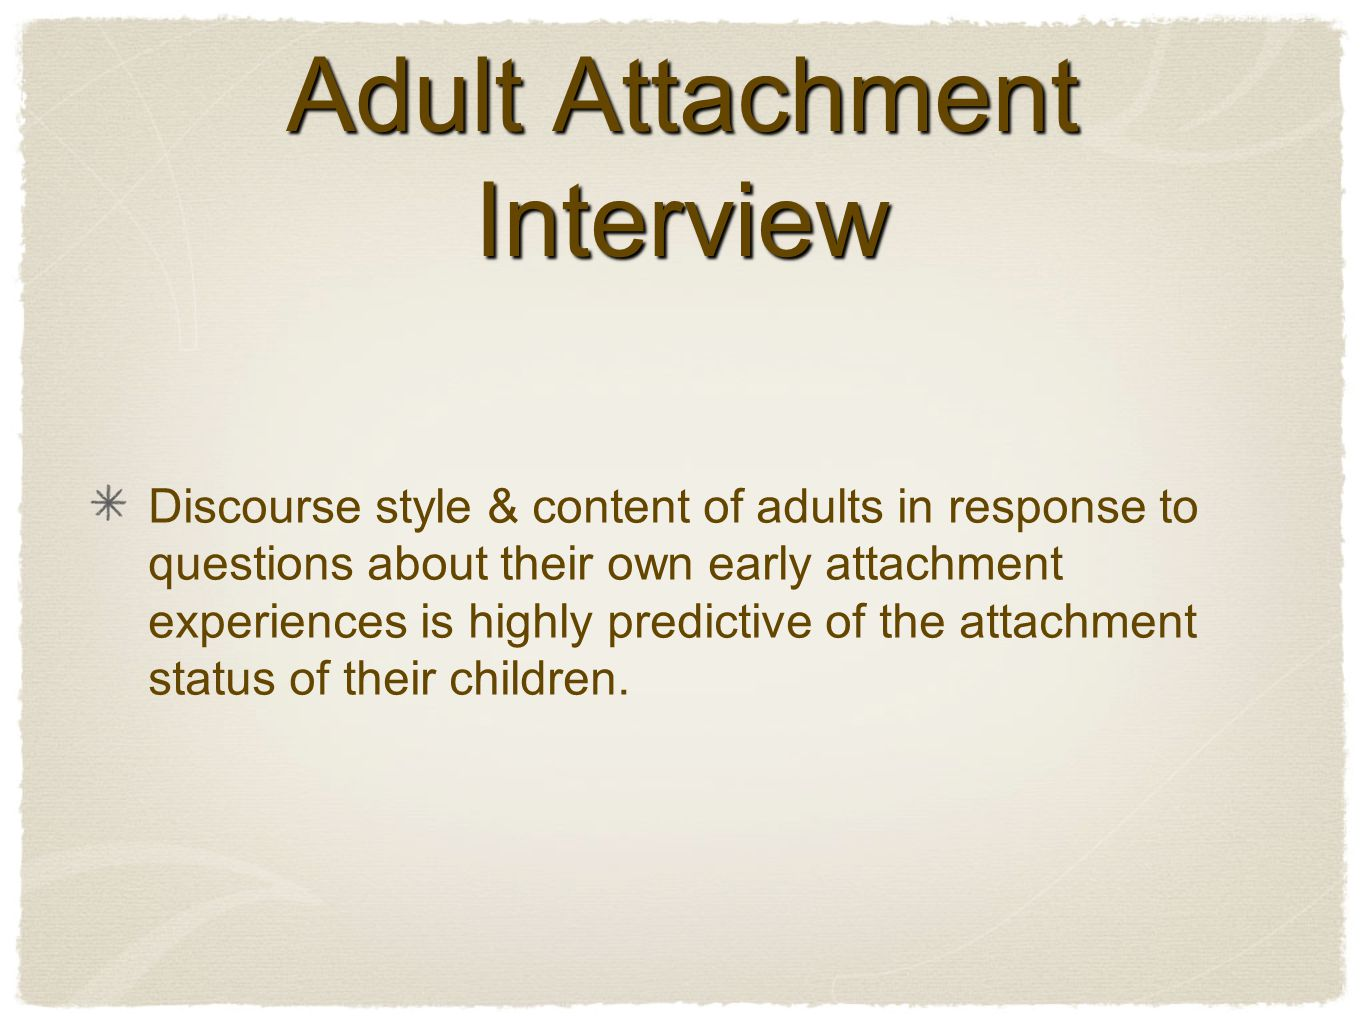 Adult Attachment Interview Discourse style & content of adults in response to questions about their own early attachment experiences is highly predictive of the attachment status of their children.